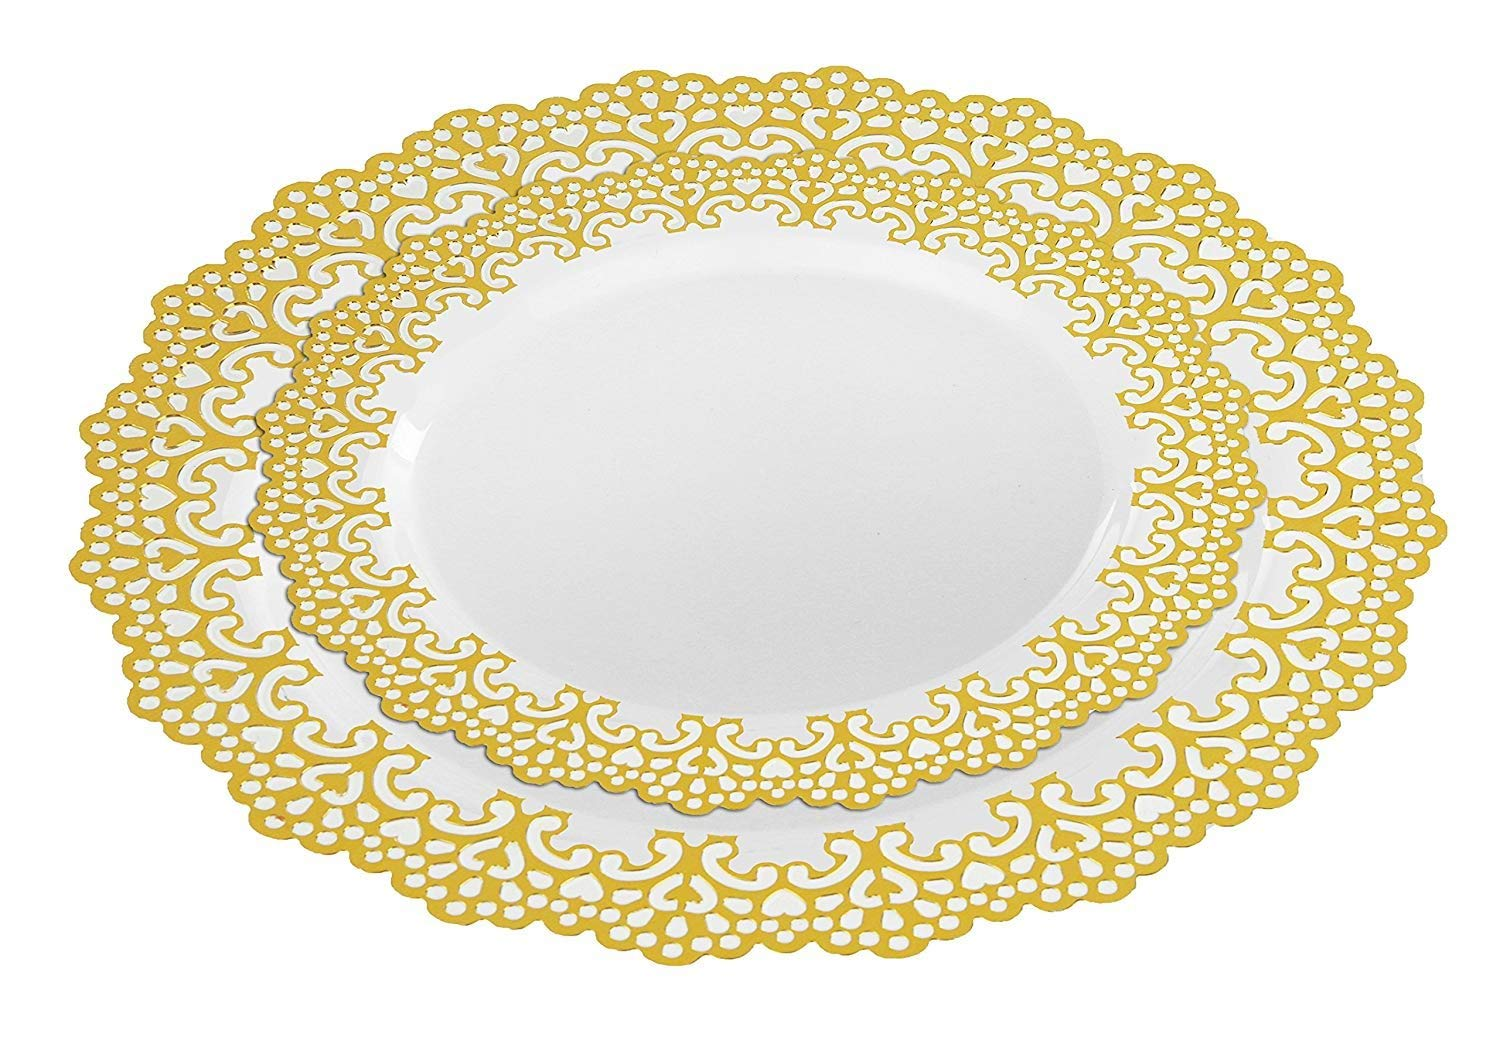 "160 Piece (80 Guest) Disposable Plastic Plates, Hard and Reusable, Real China Look - Party Package Set - Includes 10"" inch Dinner Plates and 7.5"" inch Salad/Dessert Plates (Gold, 160 Piece Bulk Set)"